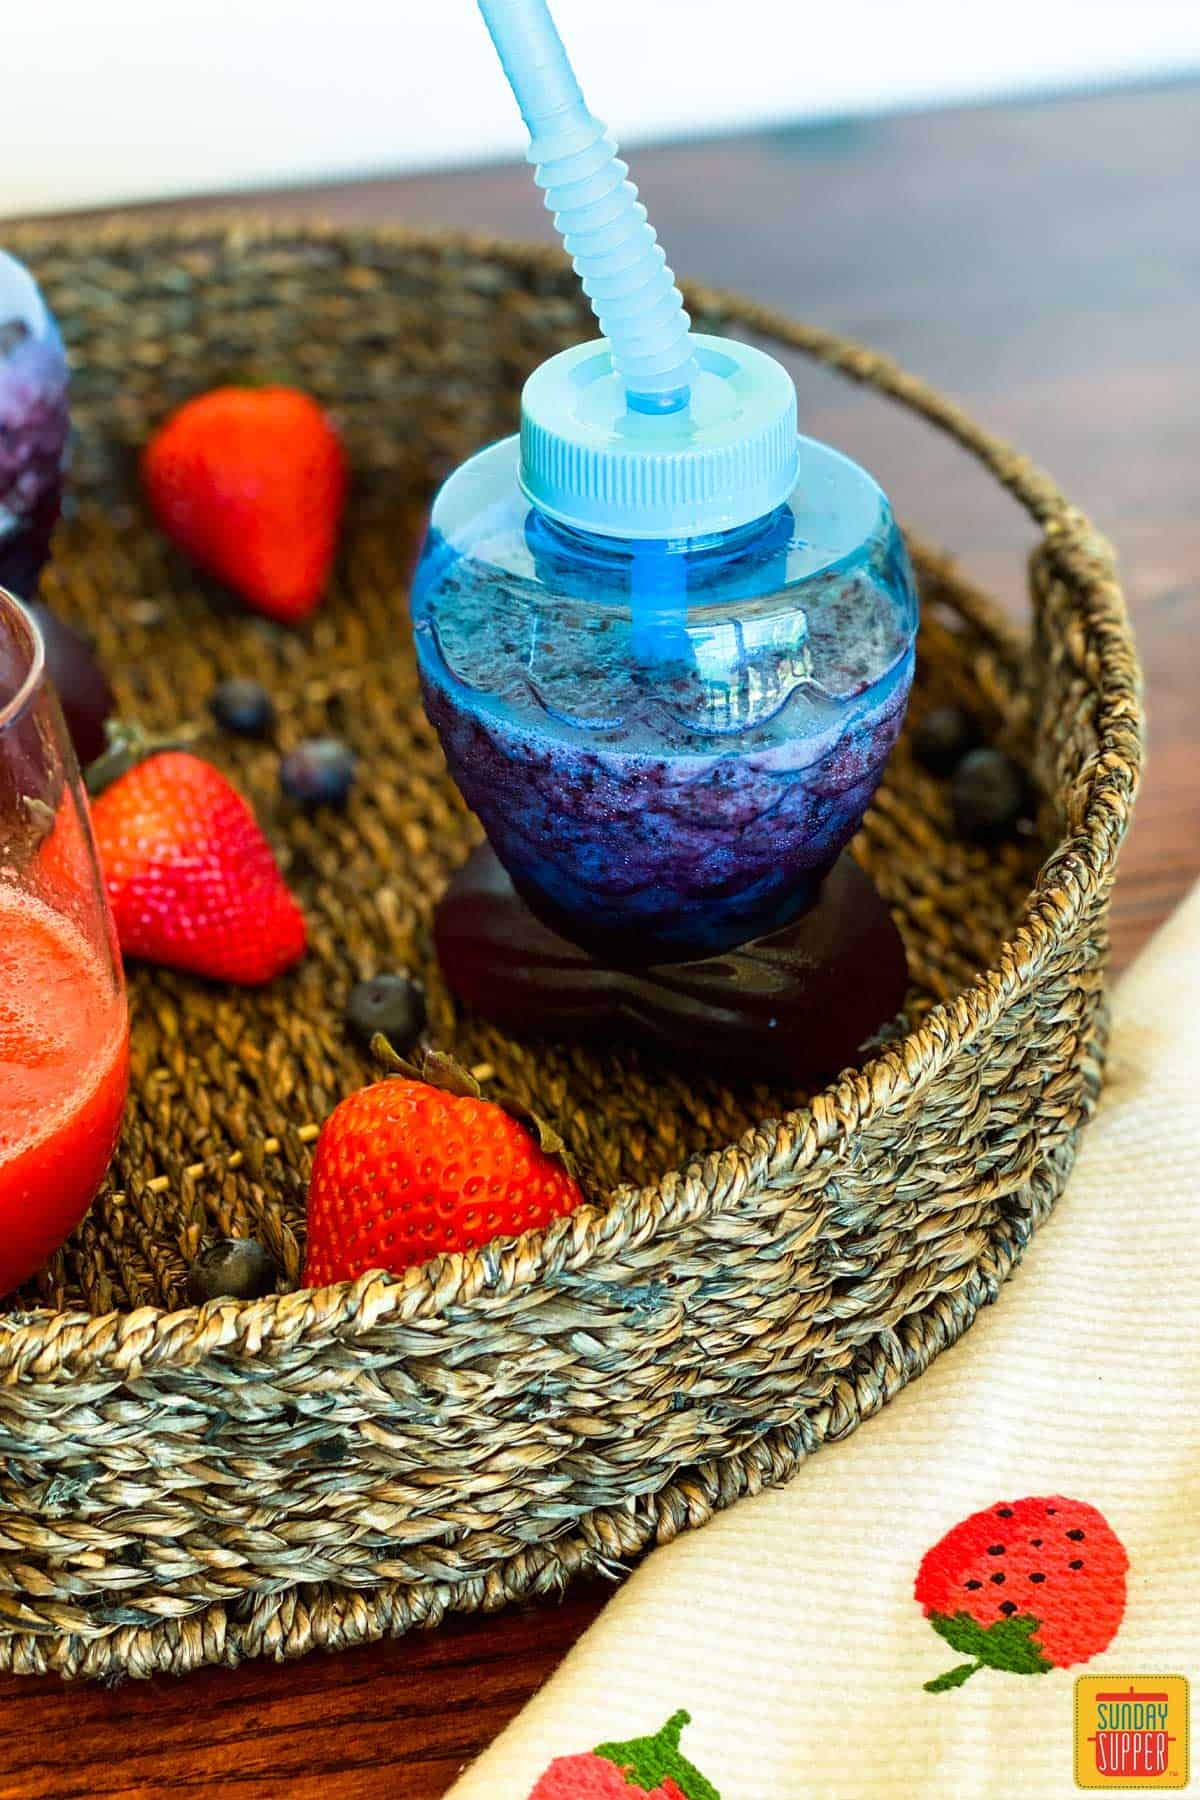 A non-alcoholic frozen strawberry daiquiri recipe using grape juice in a blue fish-shaped cup with a bendy straw, sitting in a flat basket with fresh strawberries